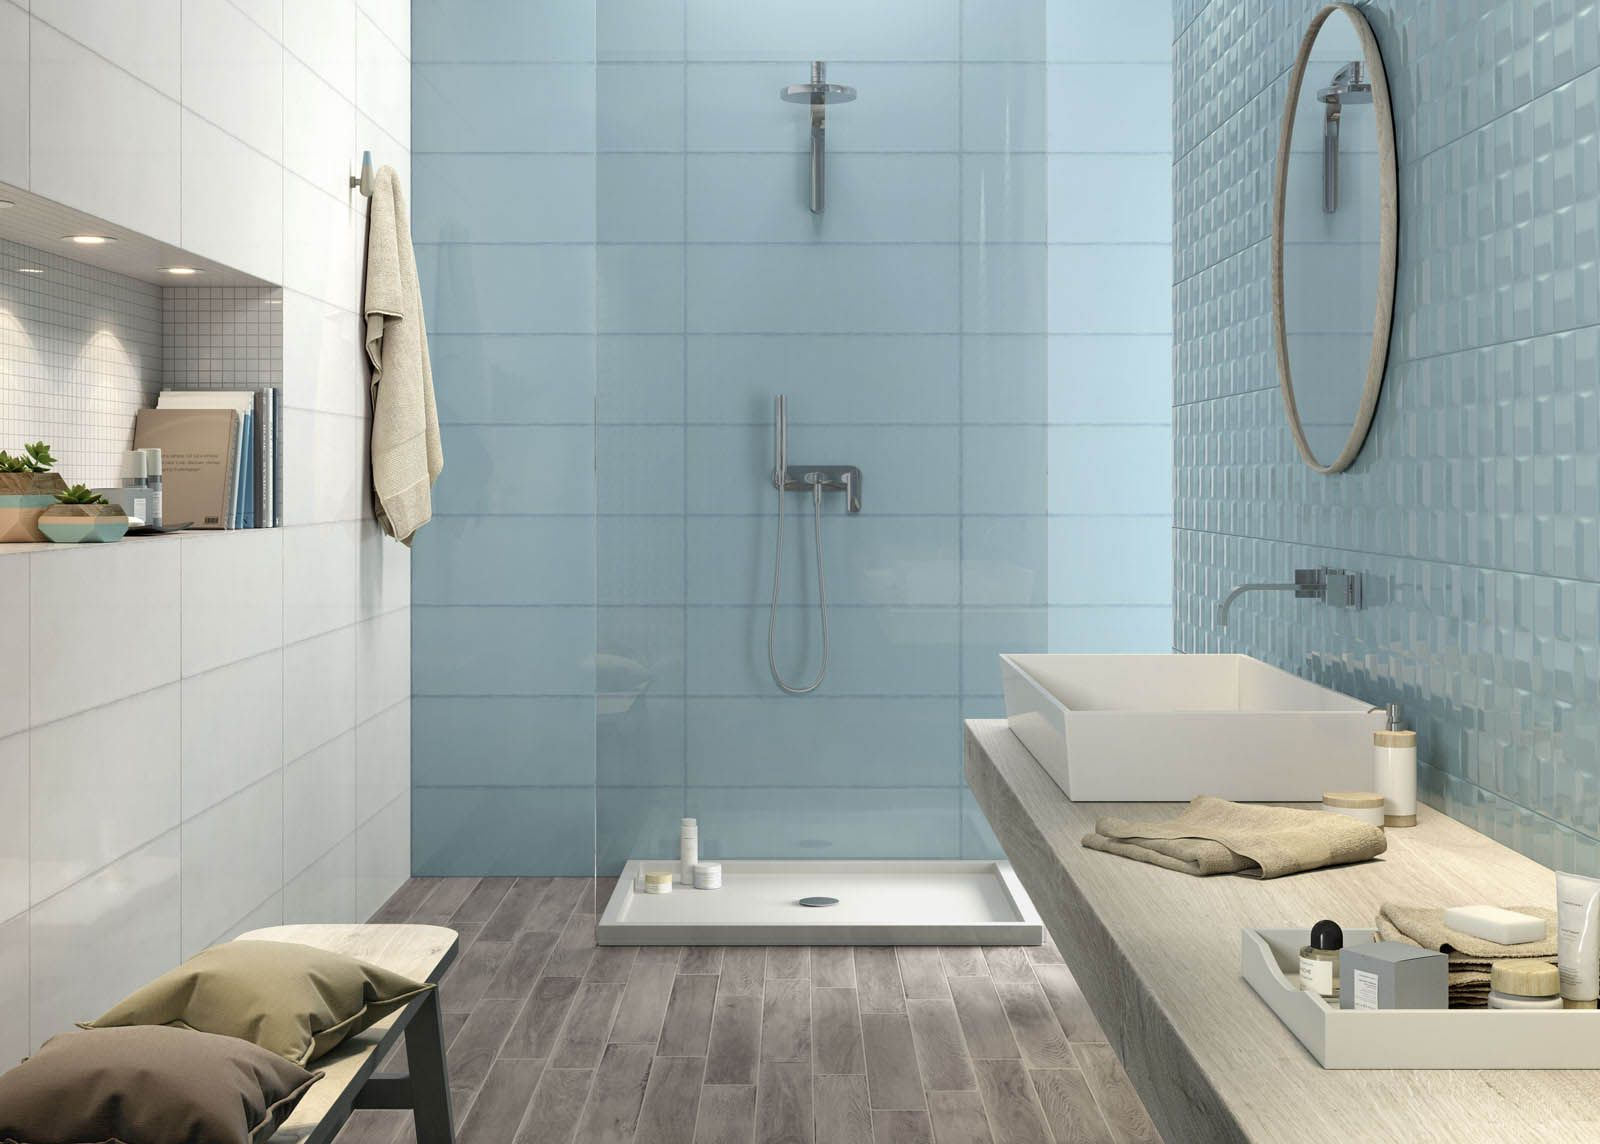 Pottery piastrelle in ceramica marazzi bathroom in